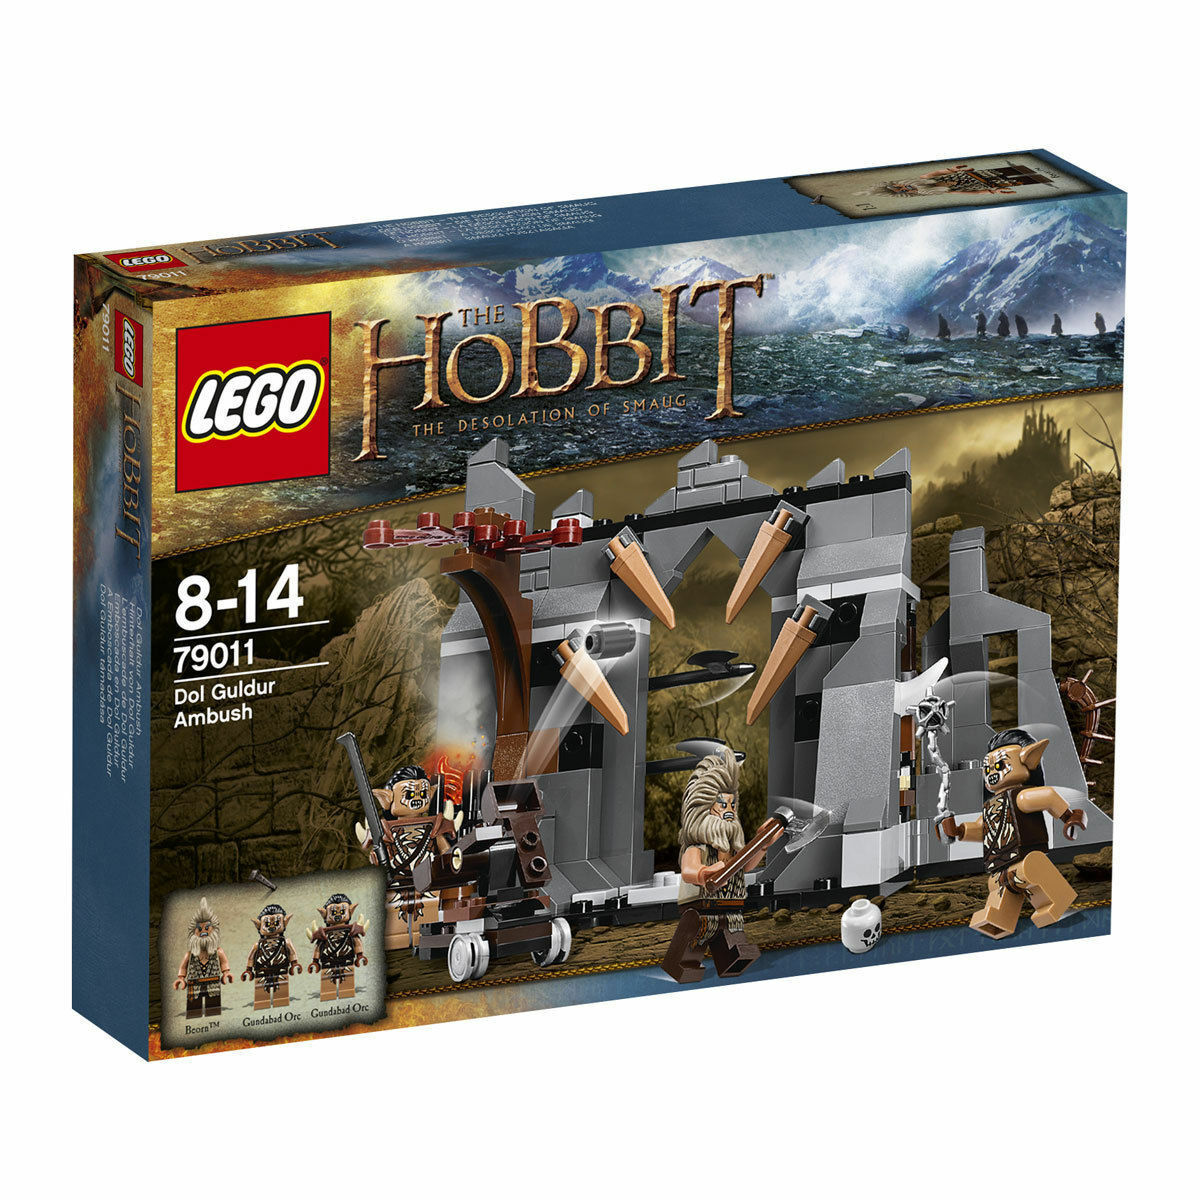 LEGO 79011 The Hobbit Dol Guldur Ambush